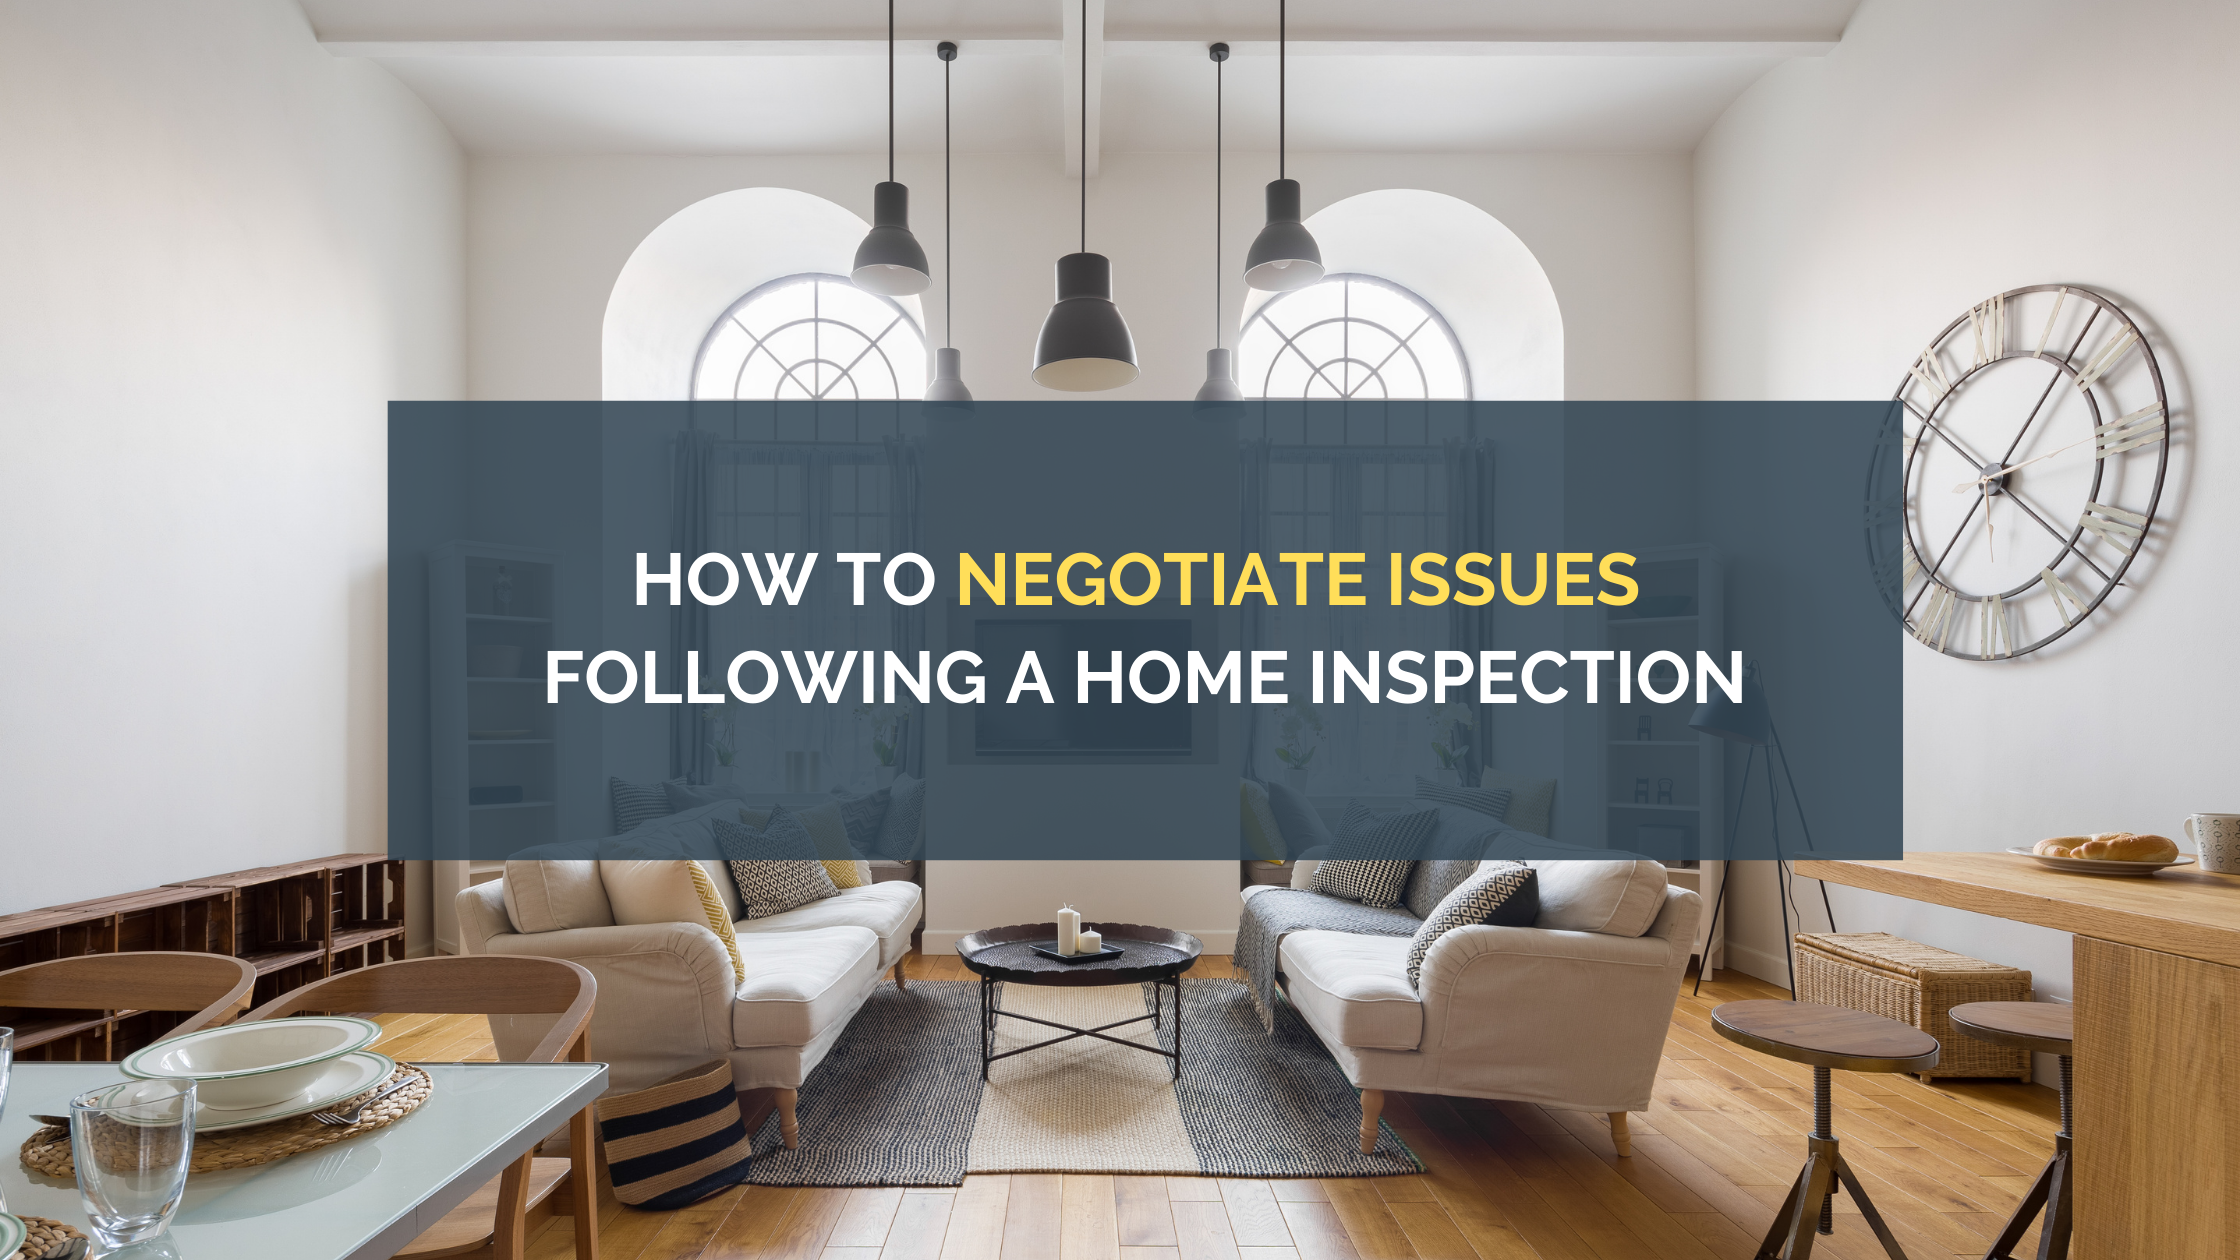 How to Negotiate Issues Following a Home Inspection